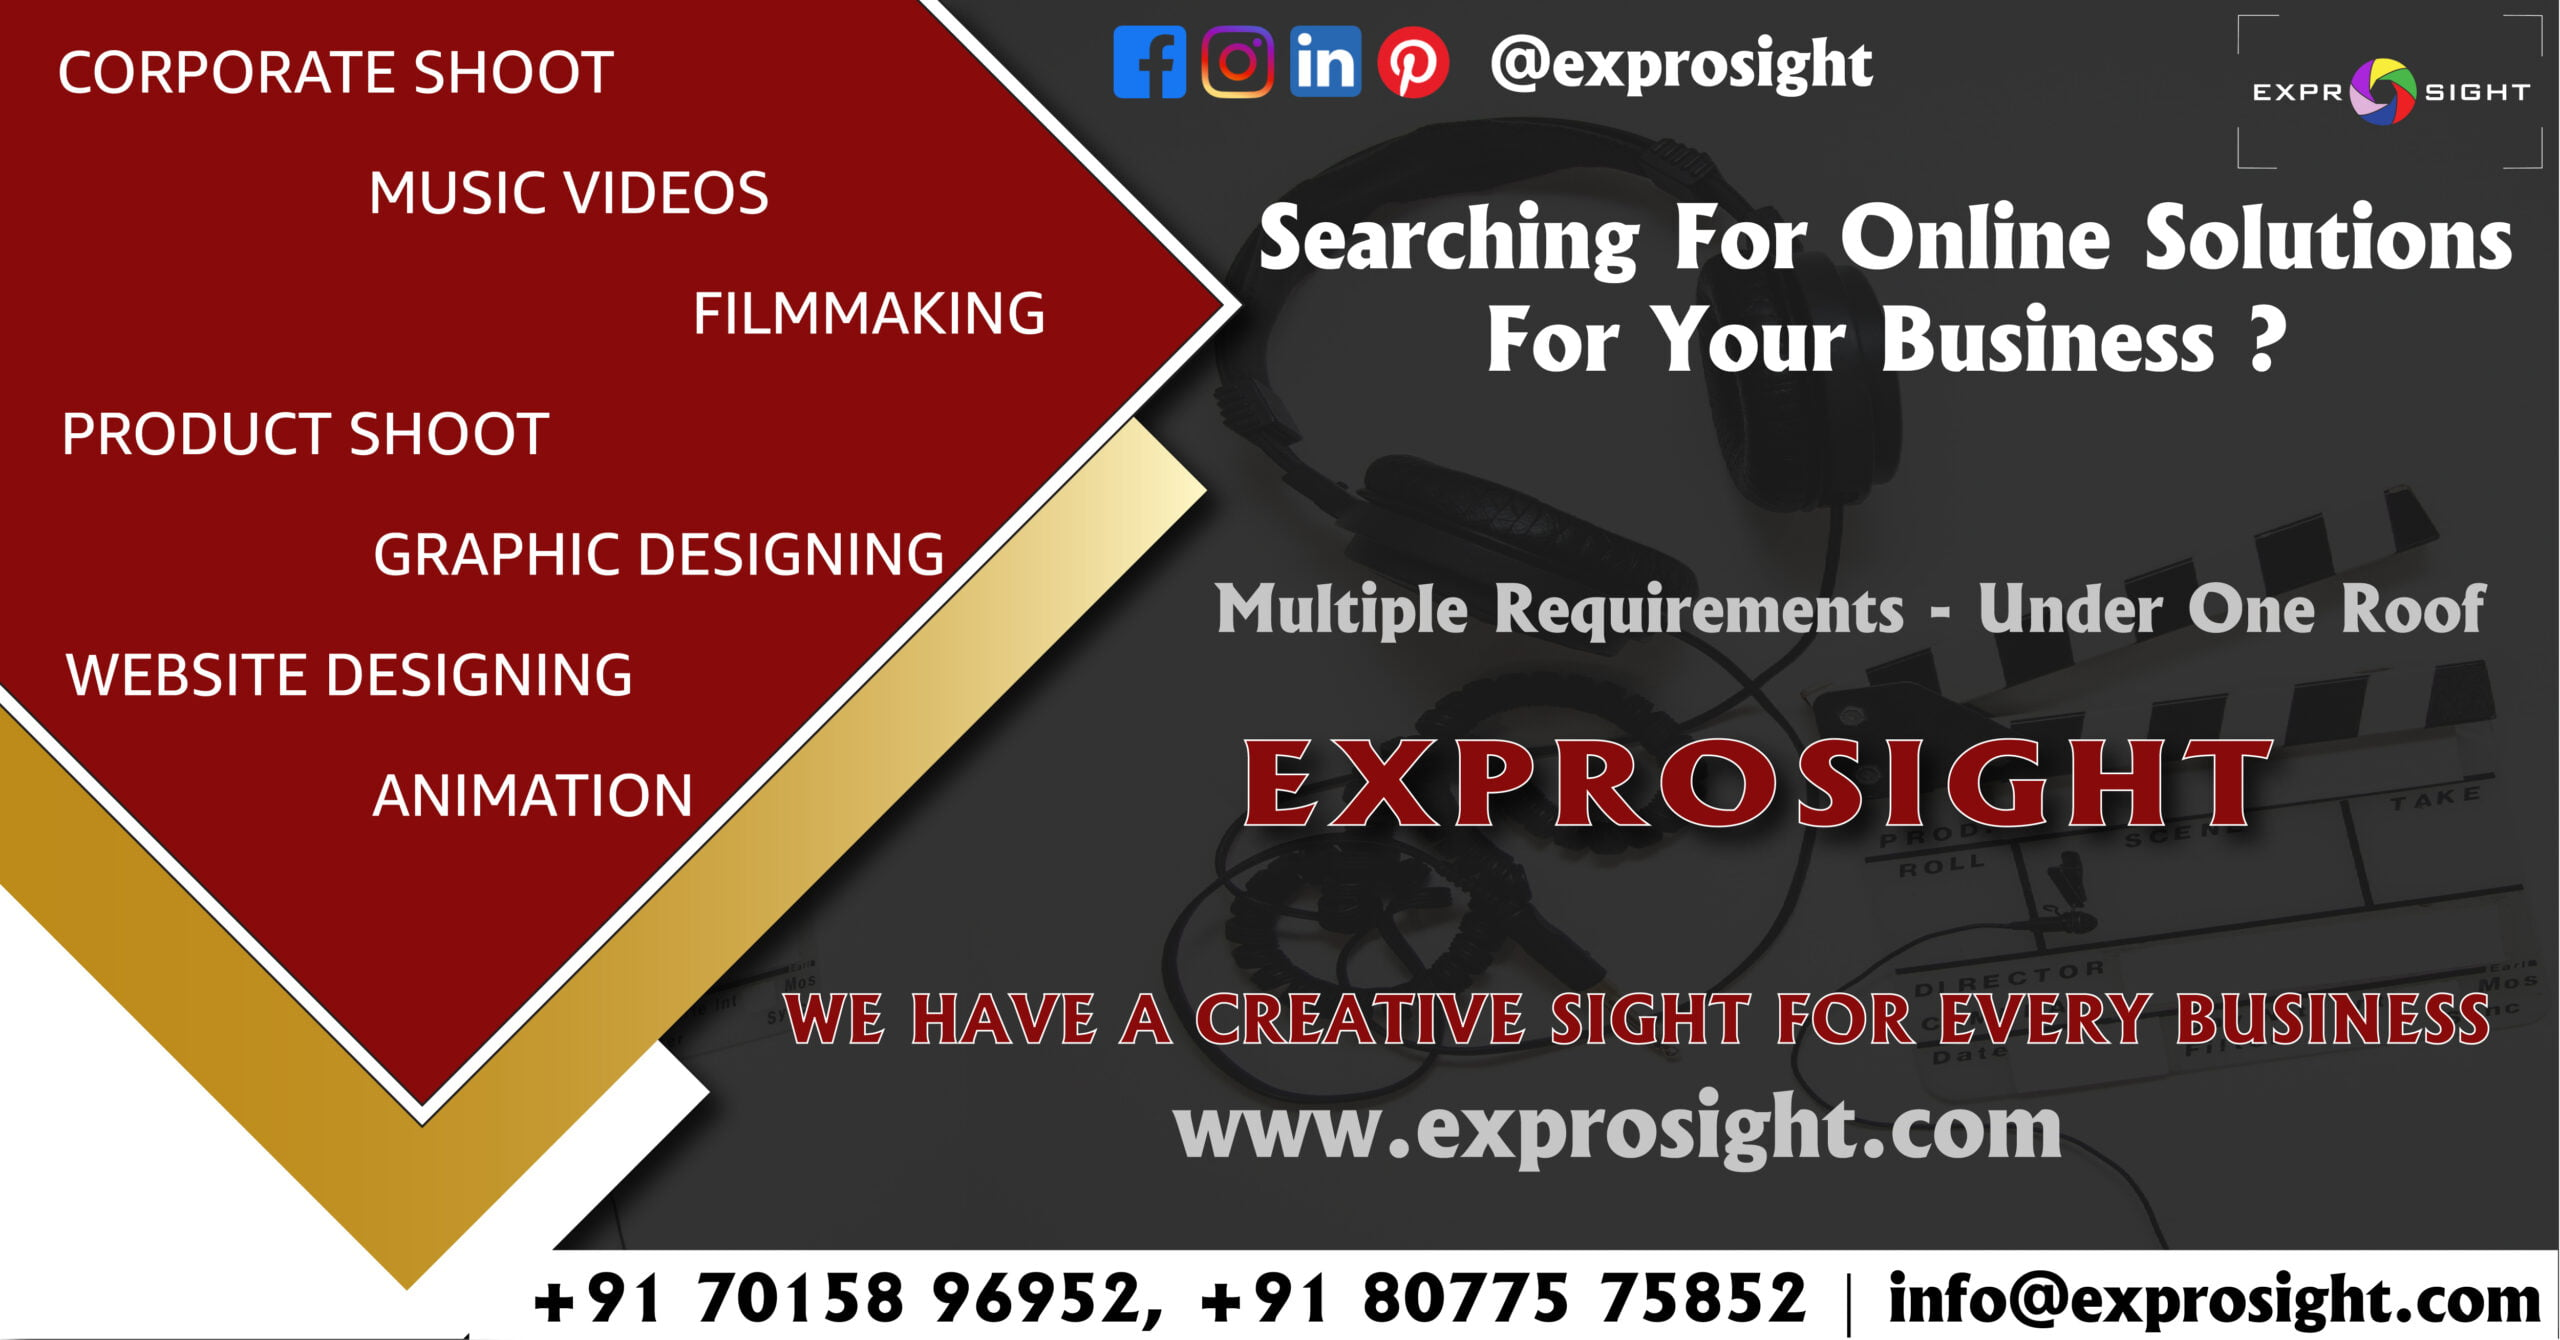 exprosight ad post